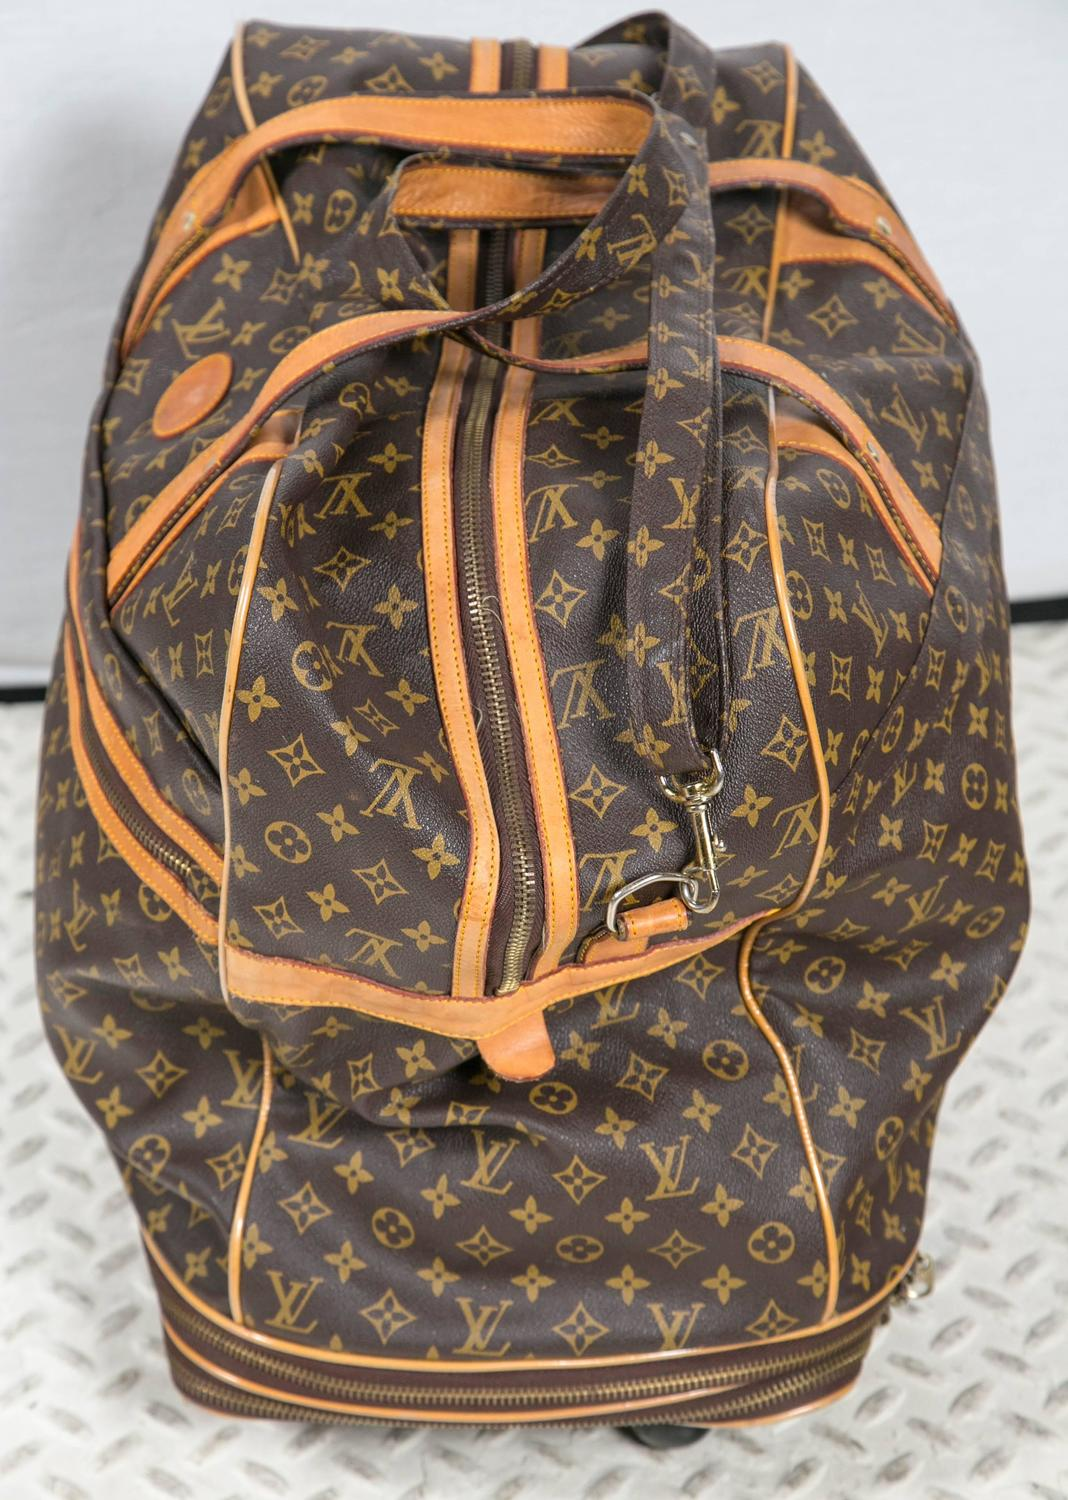 Vintage Louis Vuitton Duffle Bag For Sale At 1stdibs